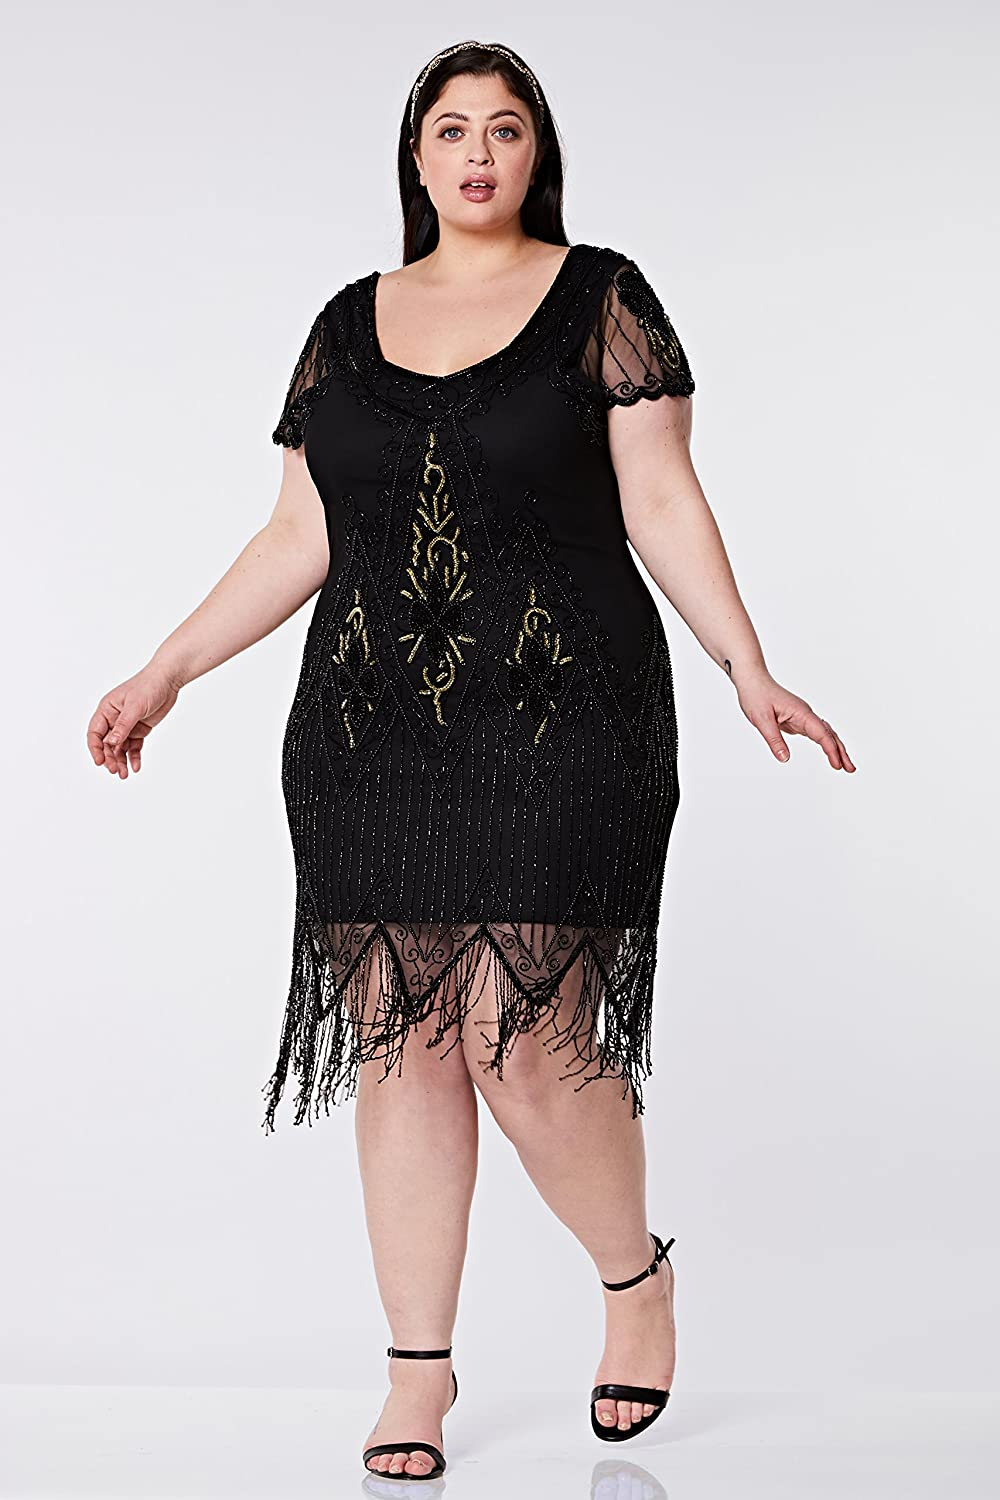 Black Flapper Dresses, 1920s Black Dresses gatsbylady london Annette Vintage Inspired Fringe Flapper Dress in Black Gold $124.86 AT vintagedancer.com